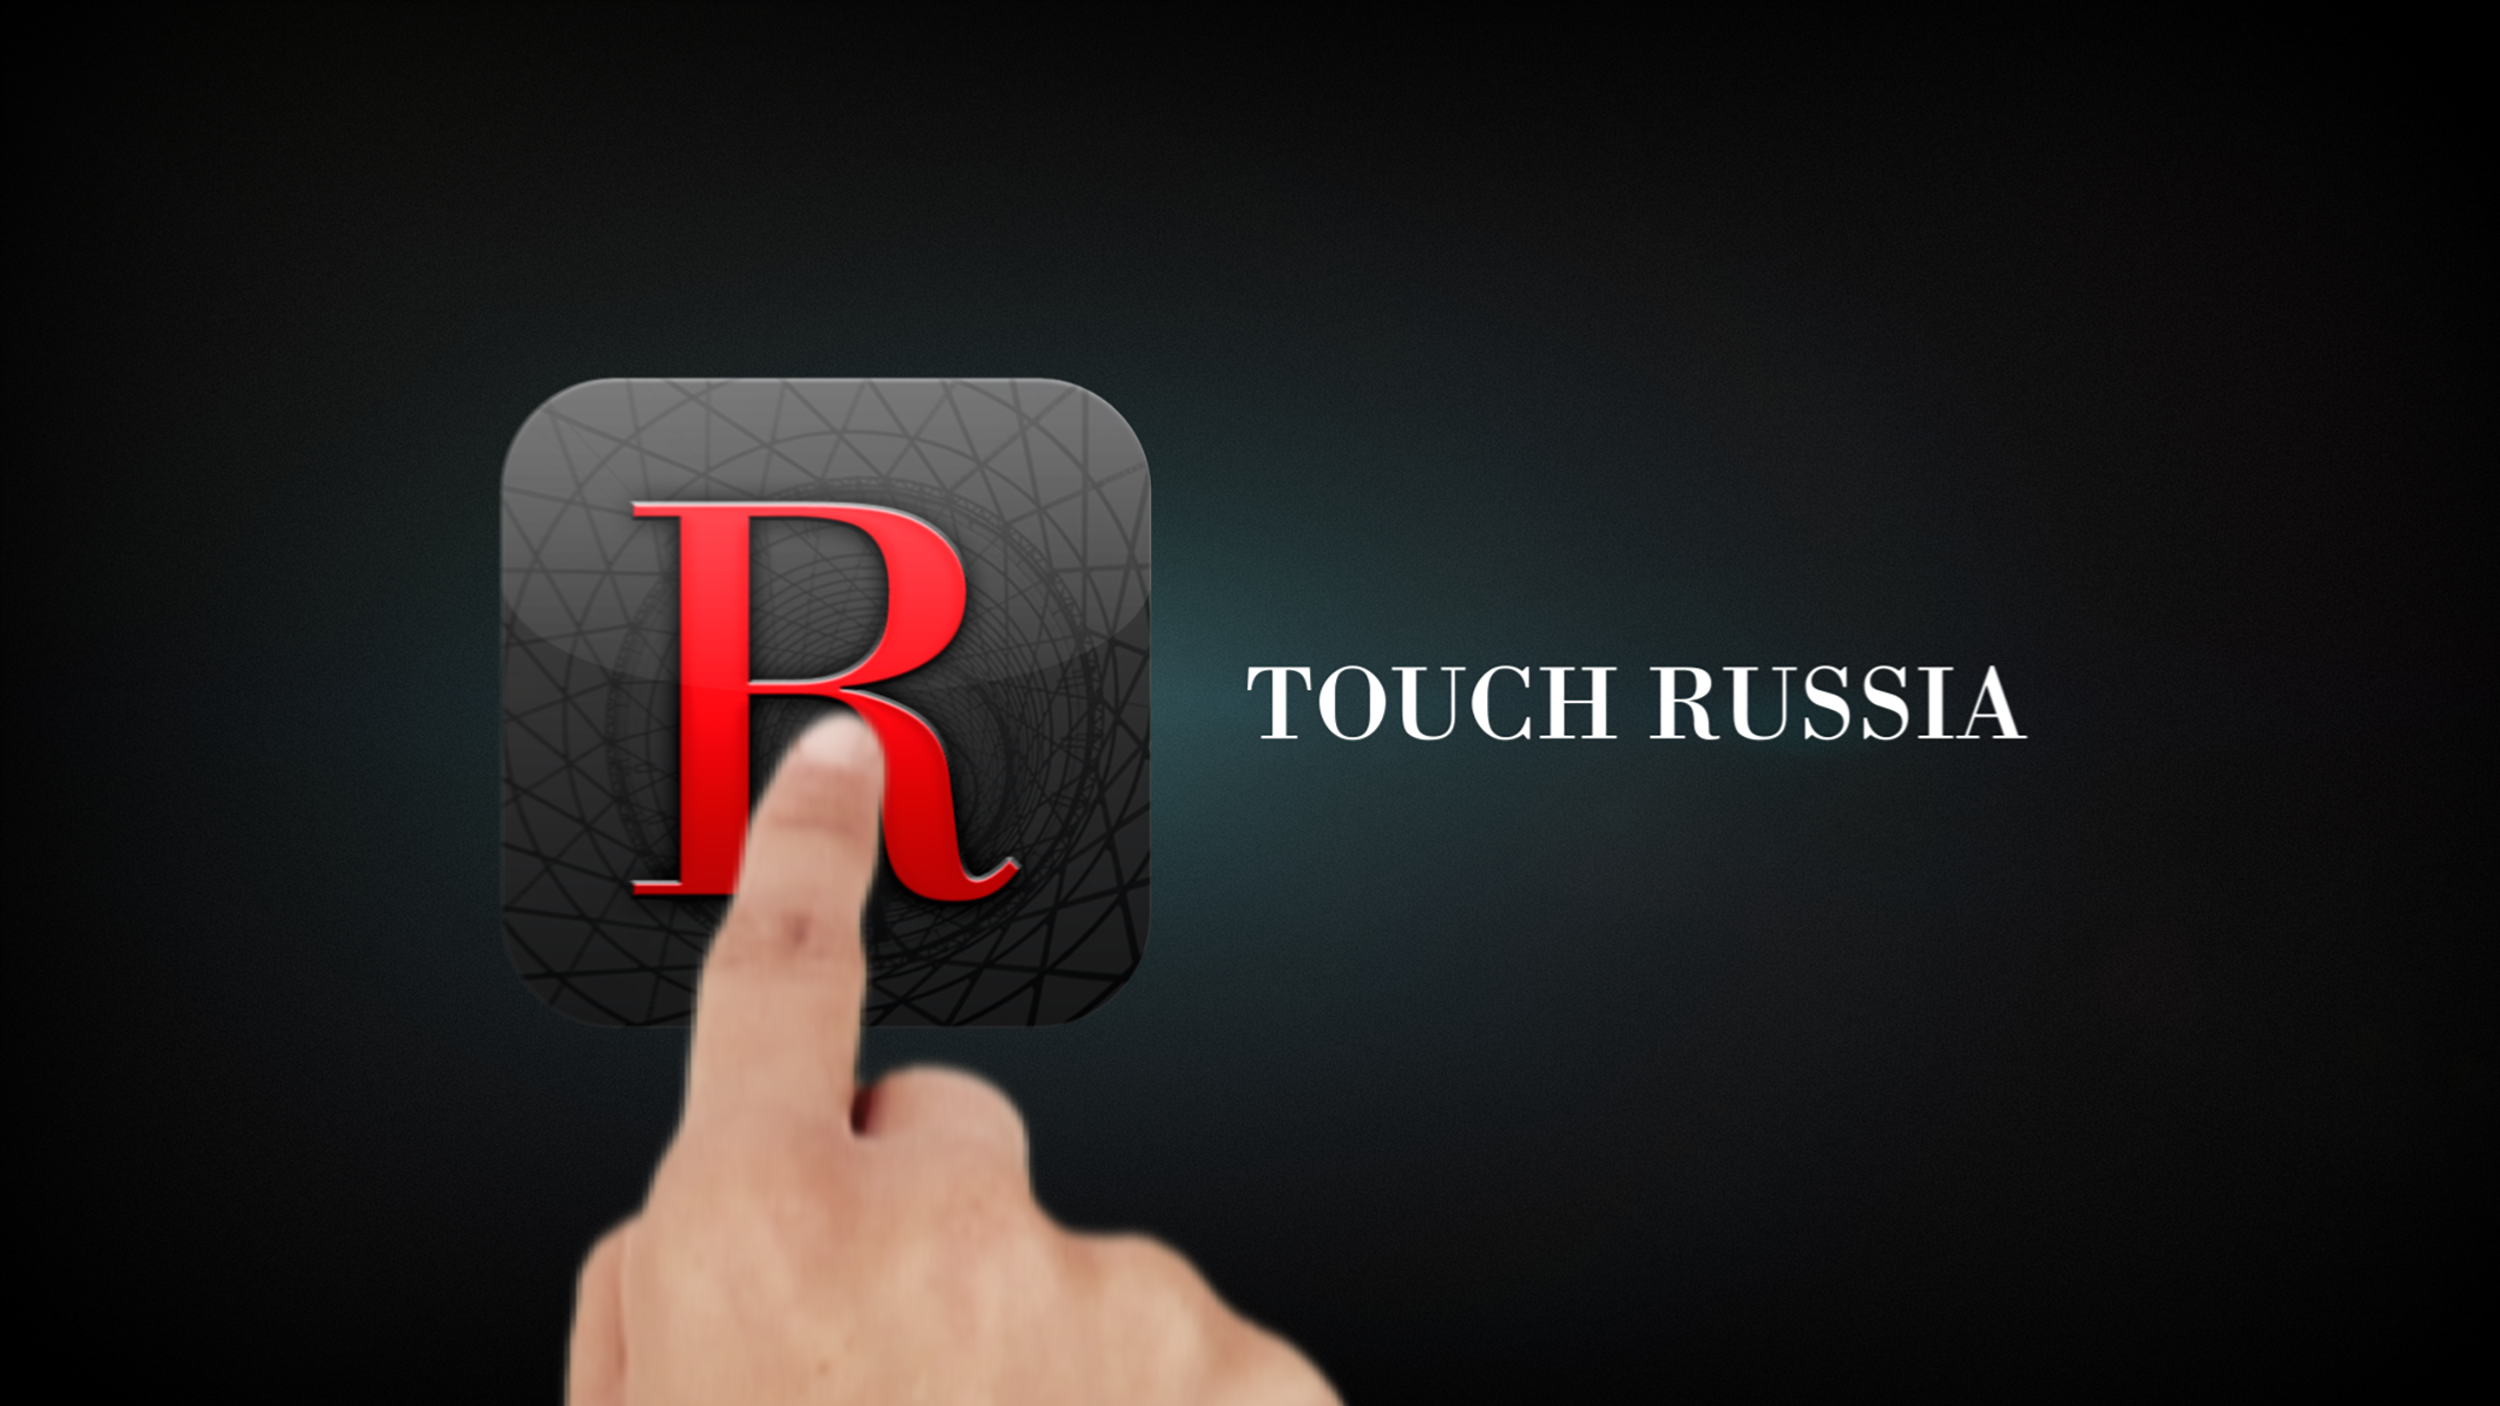 RBTH_TouchRussia_00021.png